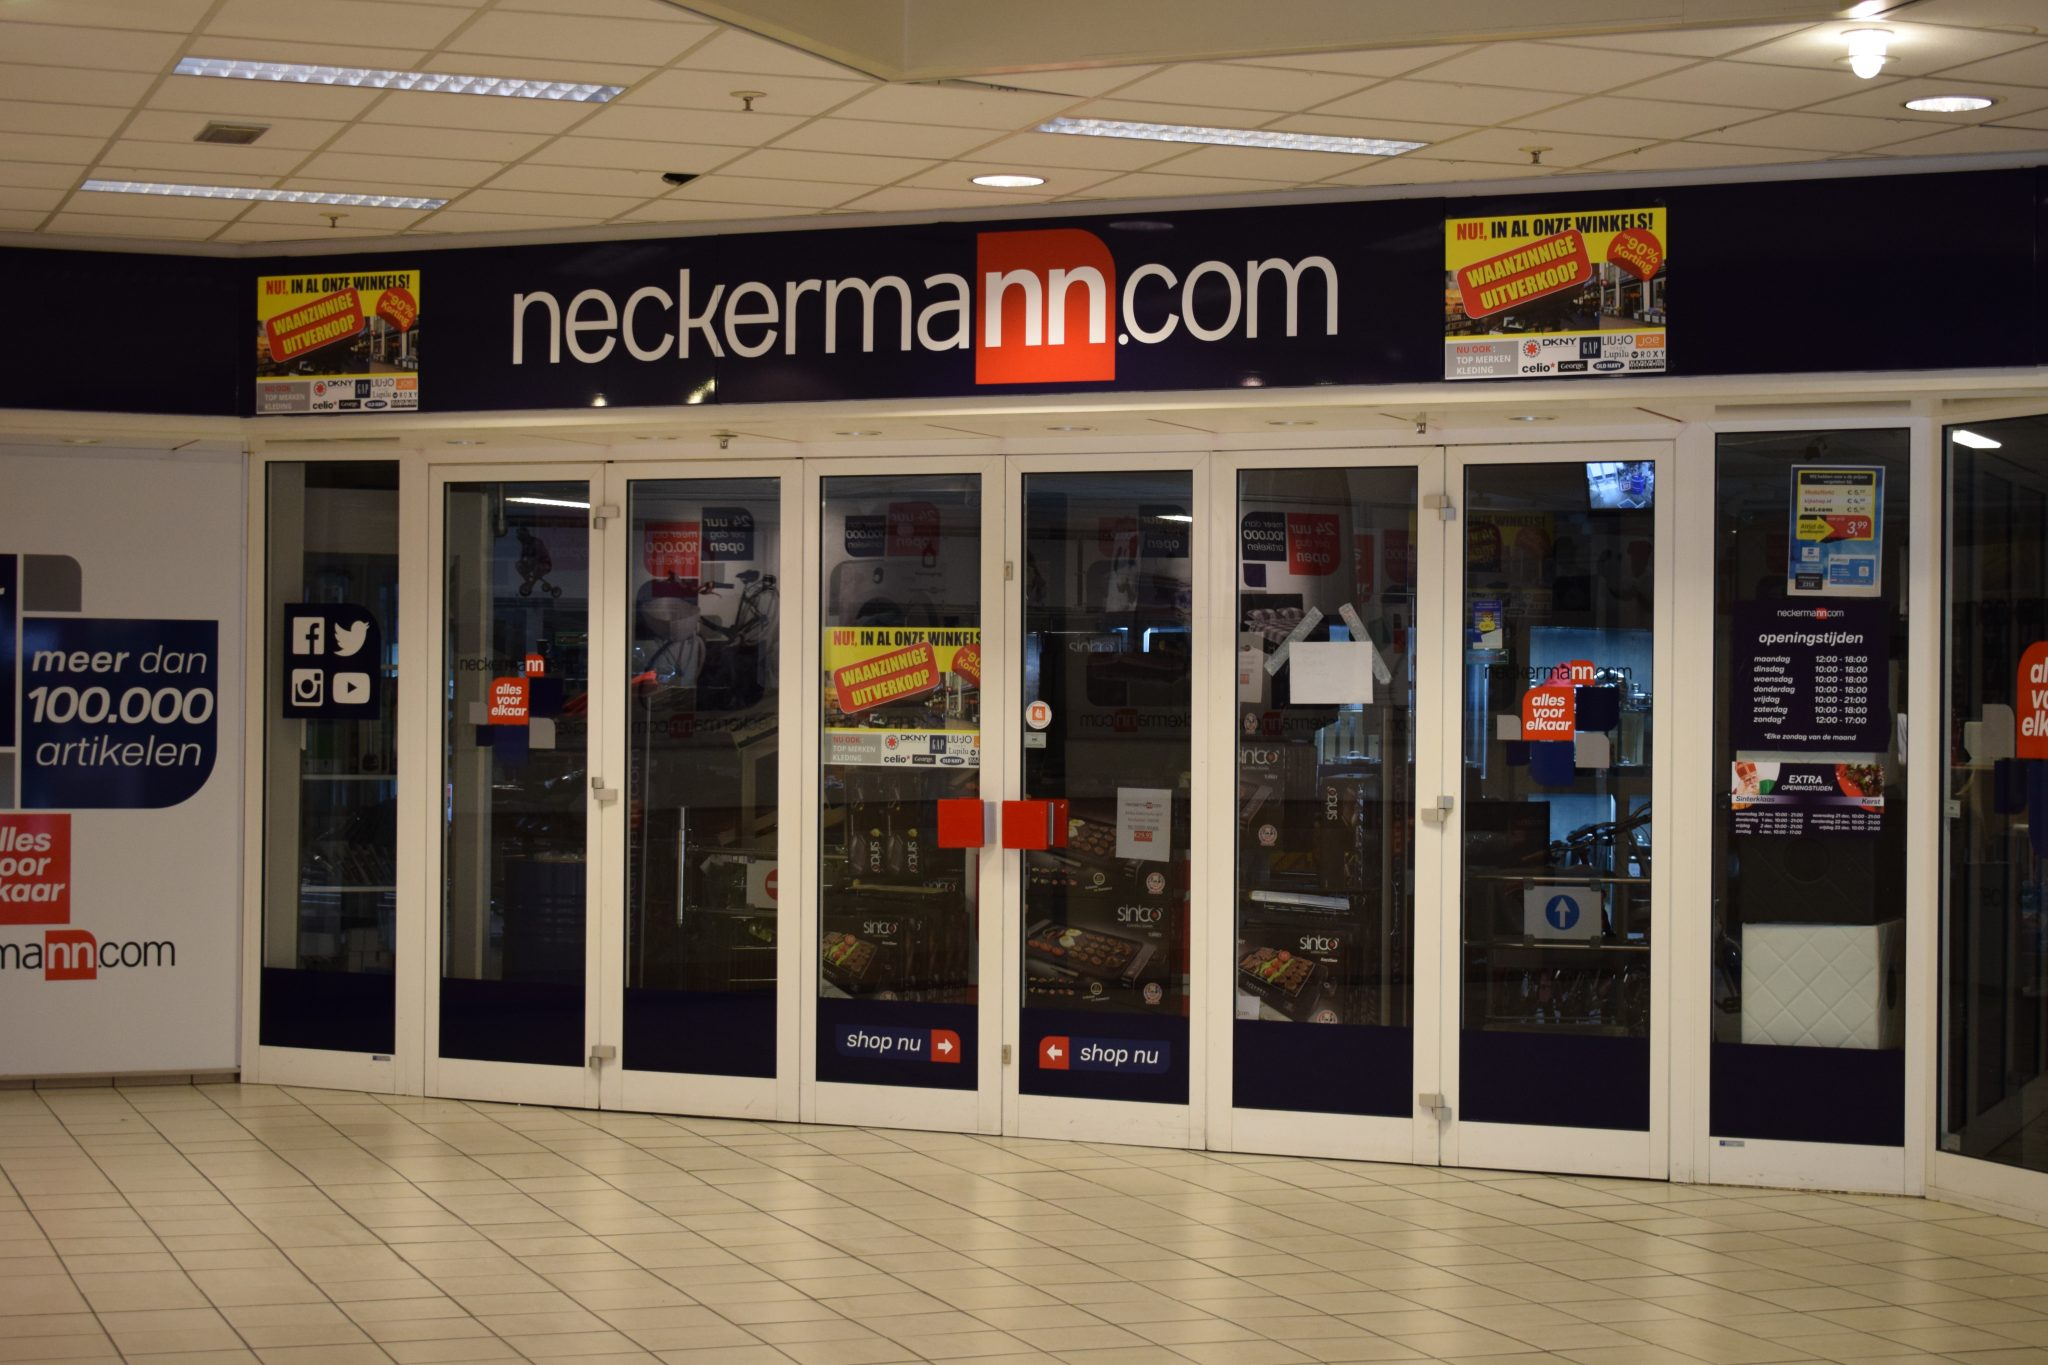 Neckermann.com failliet